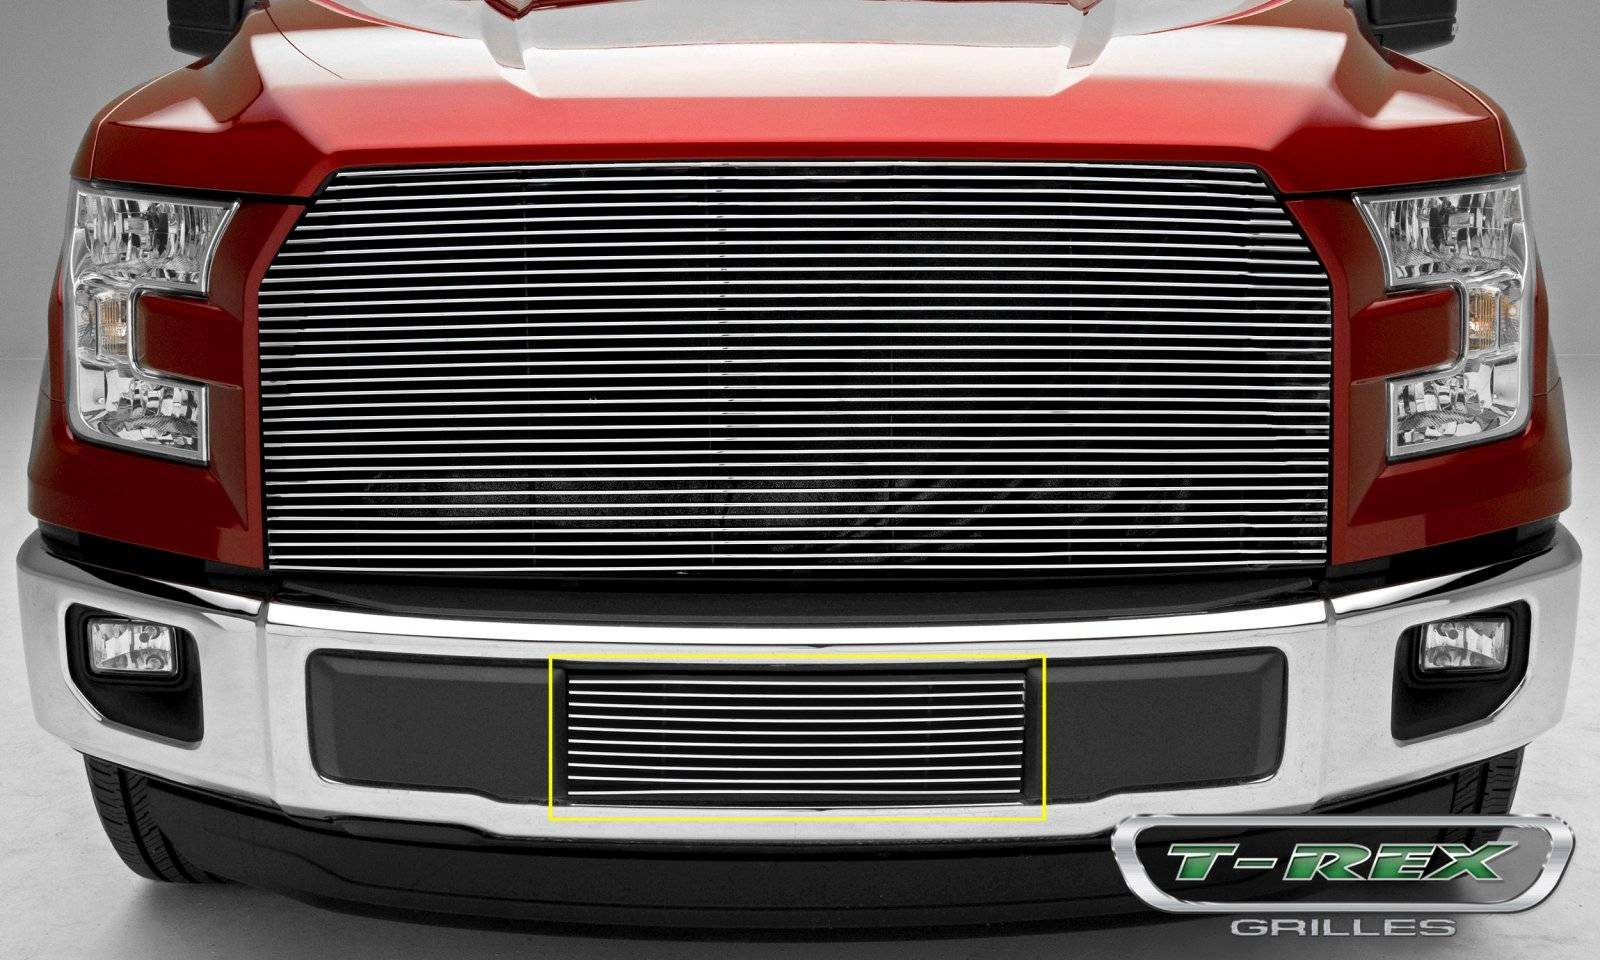 T-REX Ford F-150 V8 and Eco Boost - Billet Series - Bumper Grille with Polished Aluminum Finish - Pt # 25573